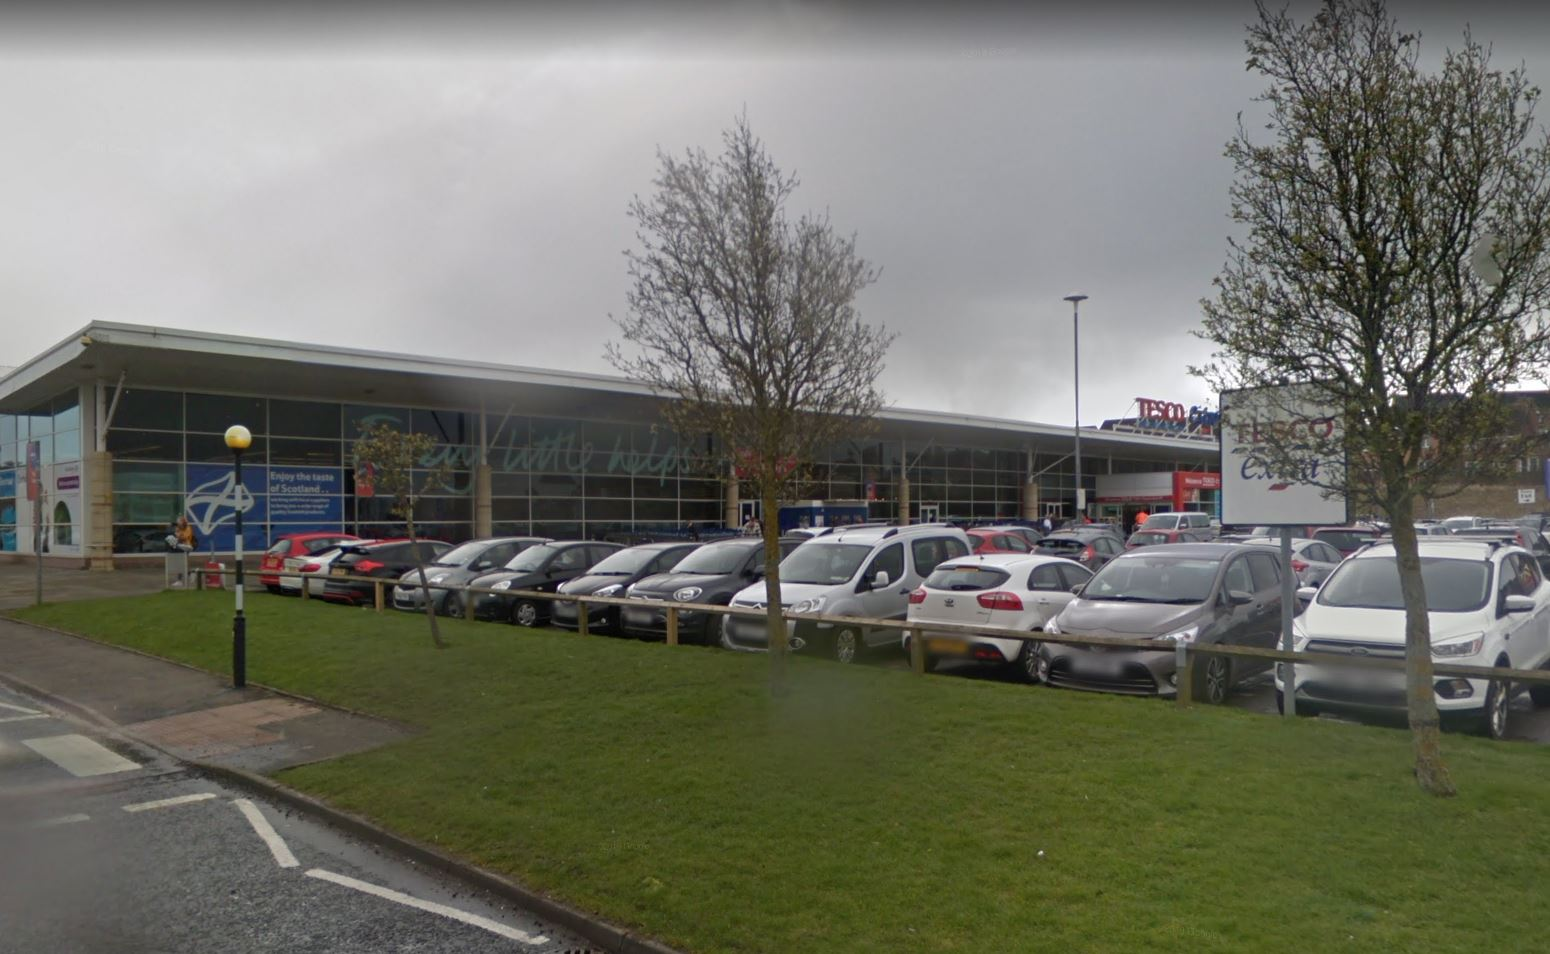 Tesco Extra in Dunfermline (stock image).